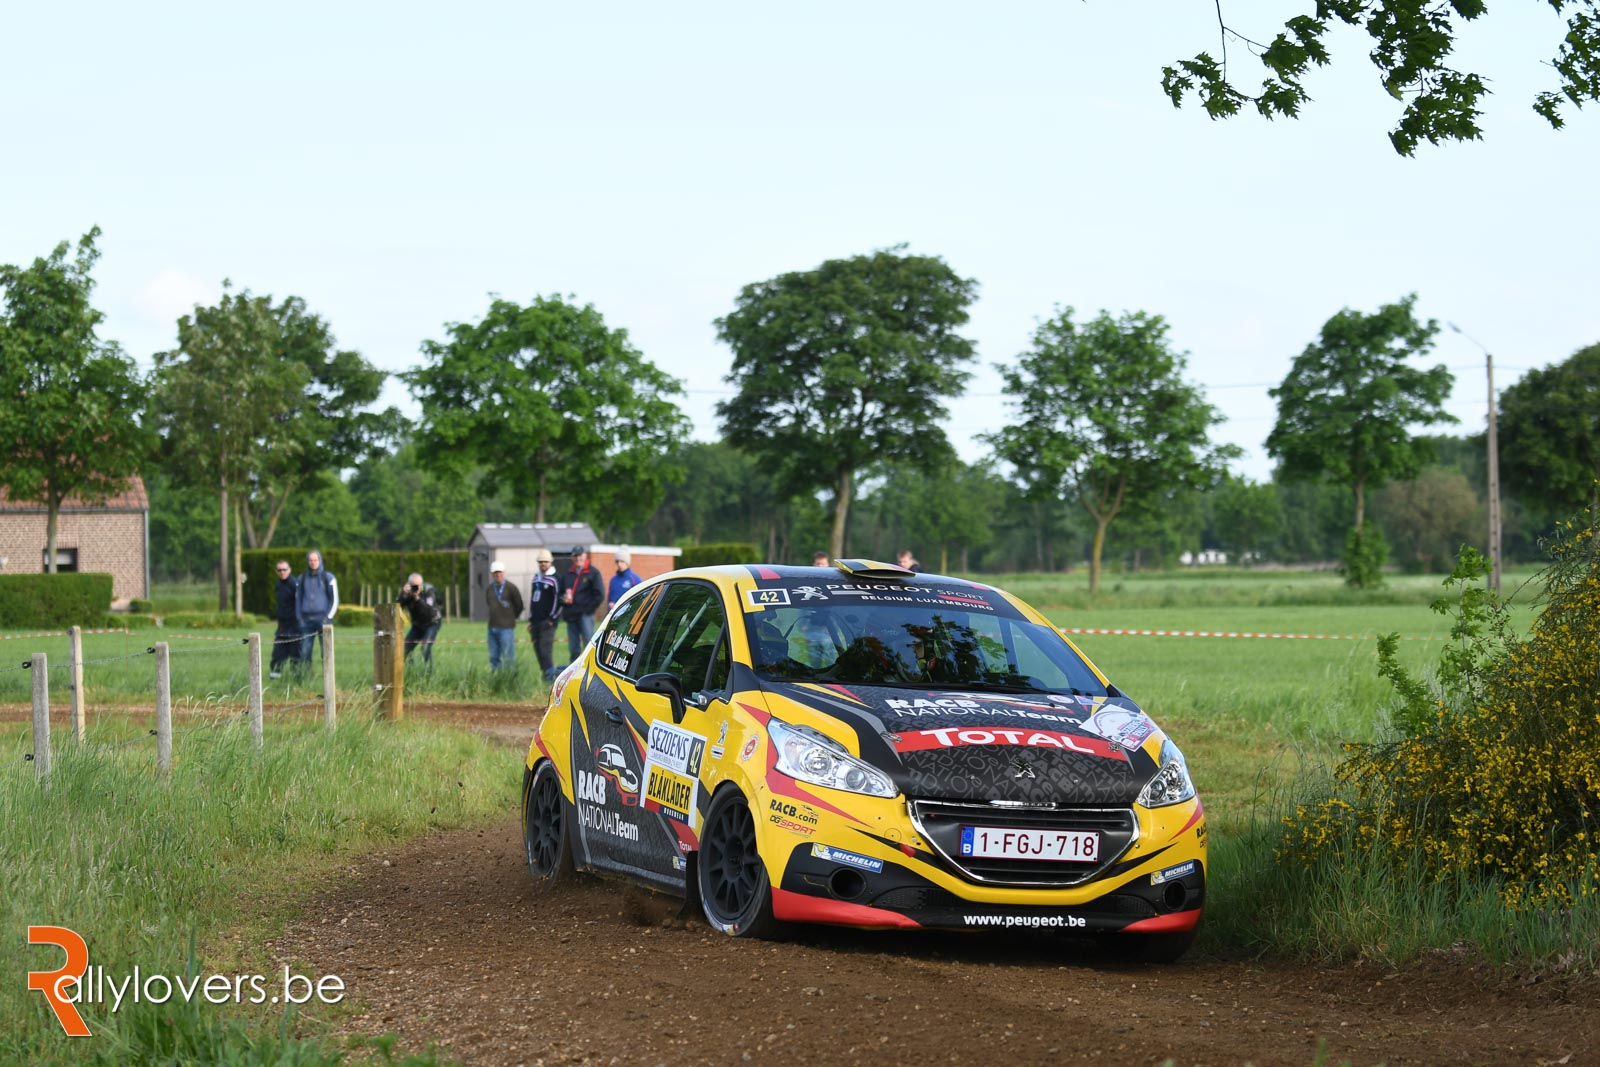 Sezoensrally - Junior BRC - Guillaume de Mevius outstanding 24 op 25 beloond met de Junior Award